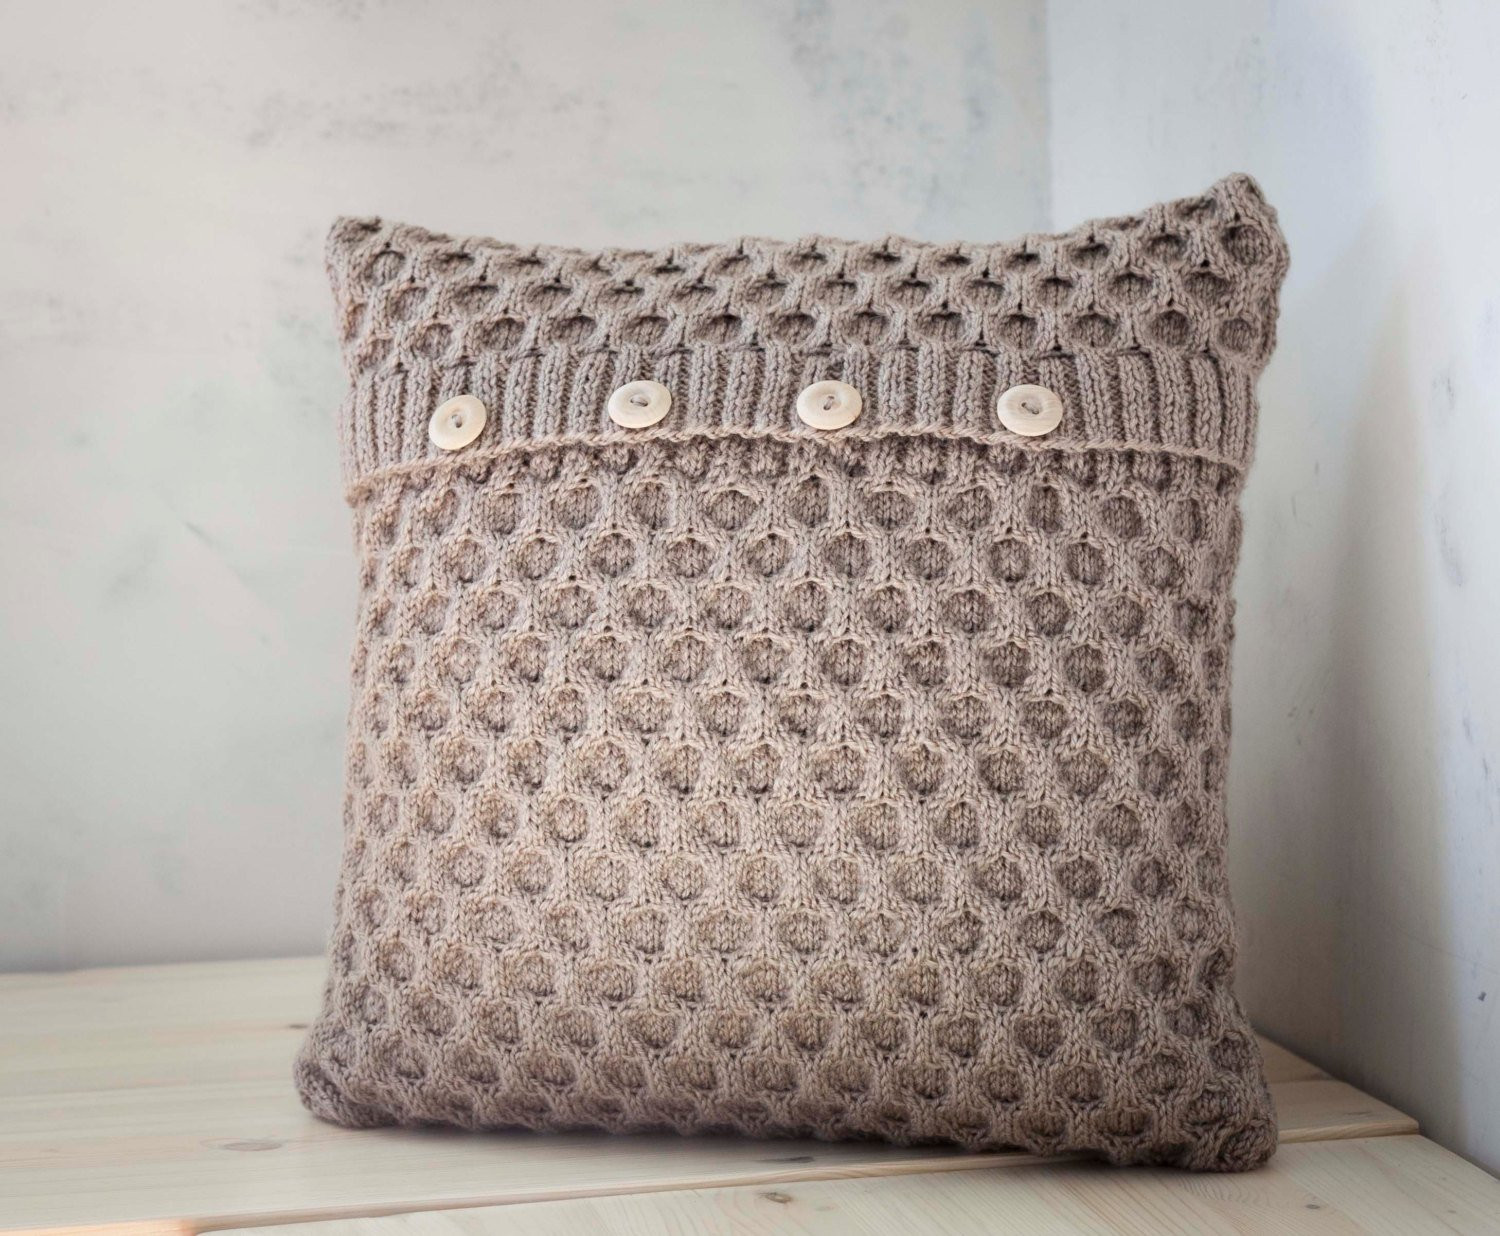 Cushion Patterns Luxury Hand Knitted Cushion Beige Waffle Pattern Pillow Cover with Of Lovely 43 Images Cushion Patterns